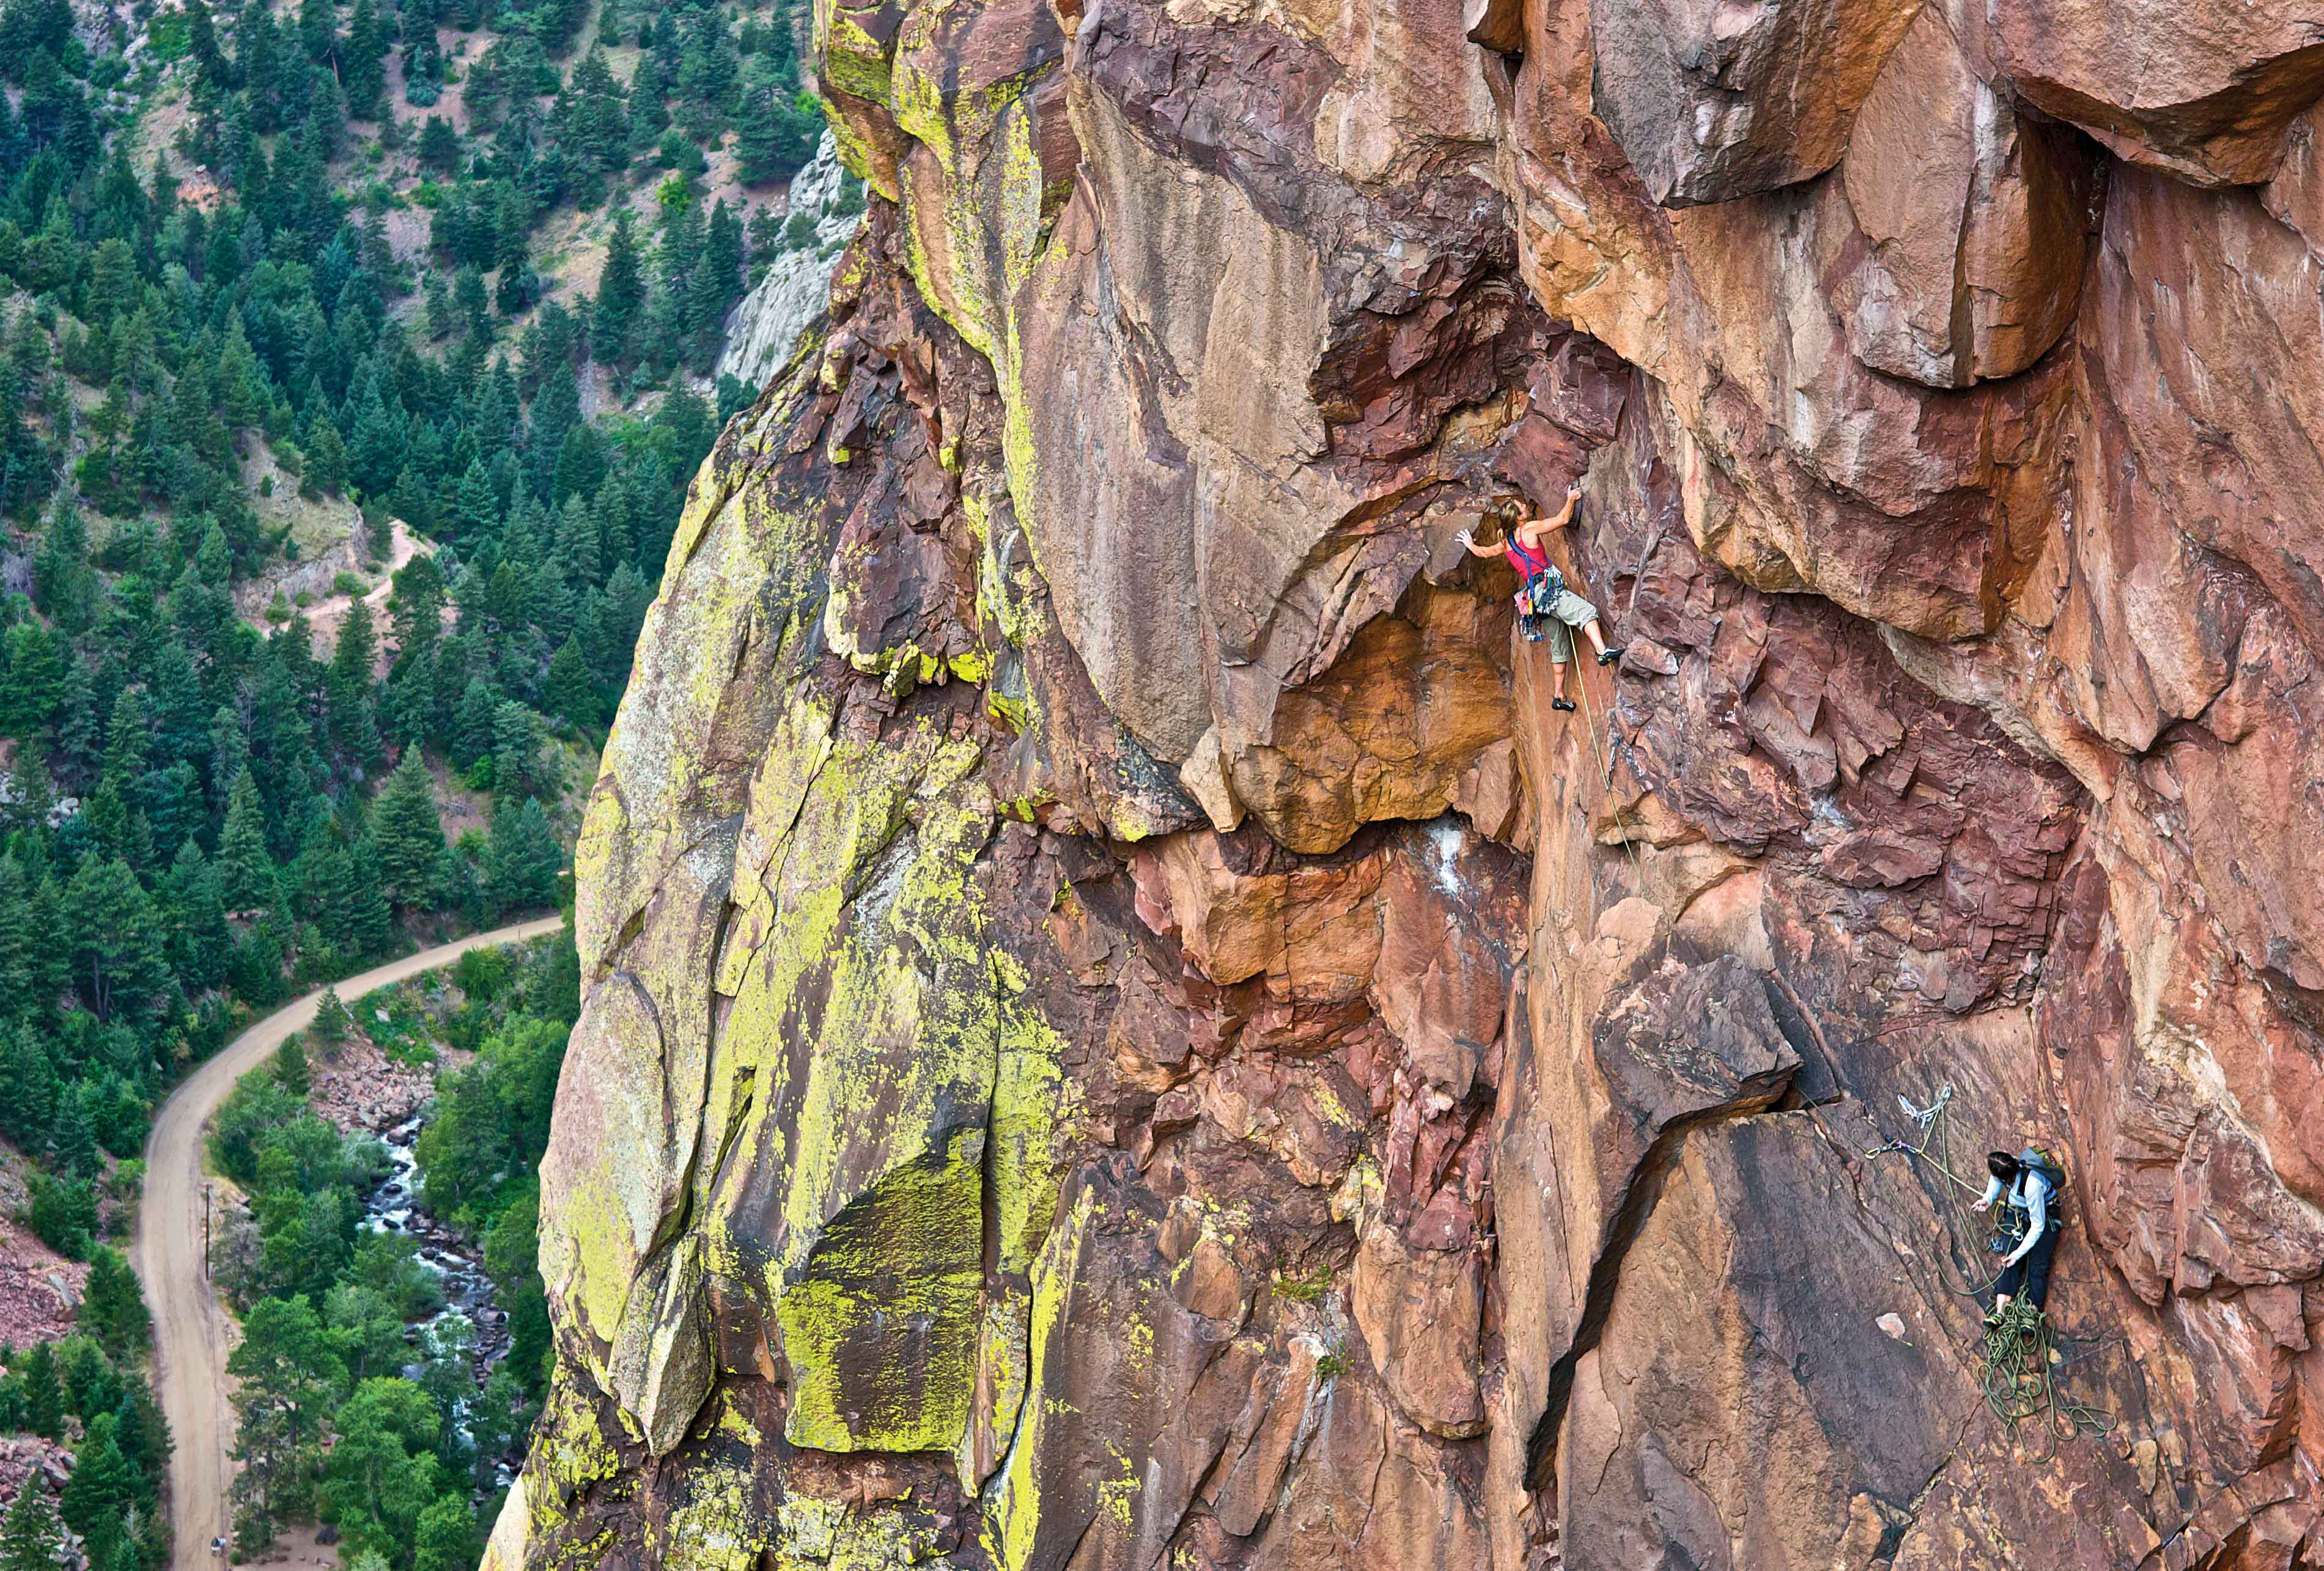 Sheyna Button belays Heidi Wirtz as she gets into the business of The Diving Board (5.11b) in Eldorado Canyon. Photo: Celin Serbo.